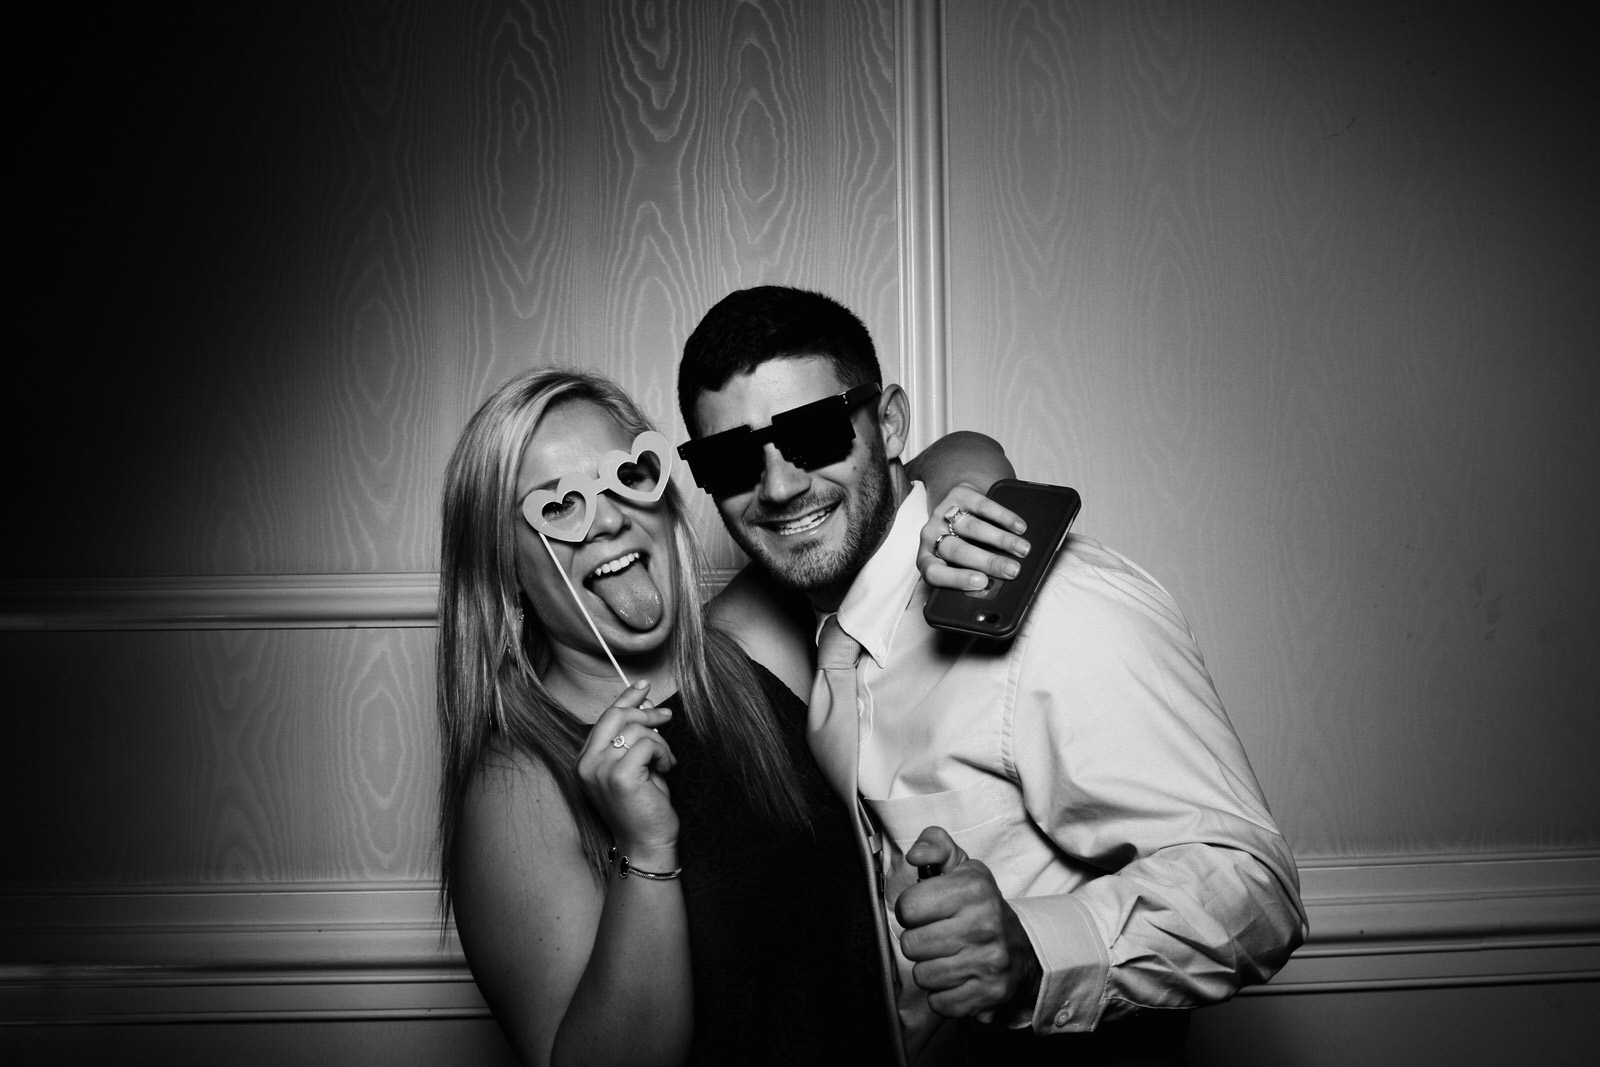 Ashley-Tyrone-Wedding-Photo-Booth-Presidential_Norristown-Wedding-20.jpg